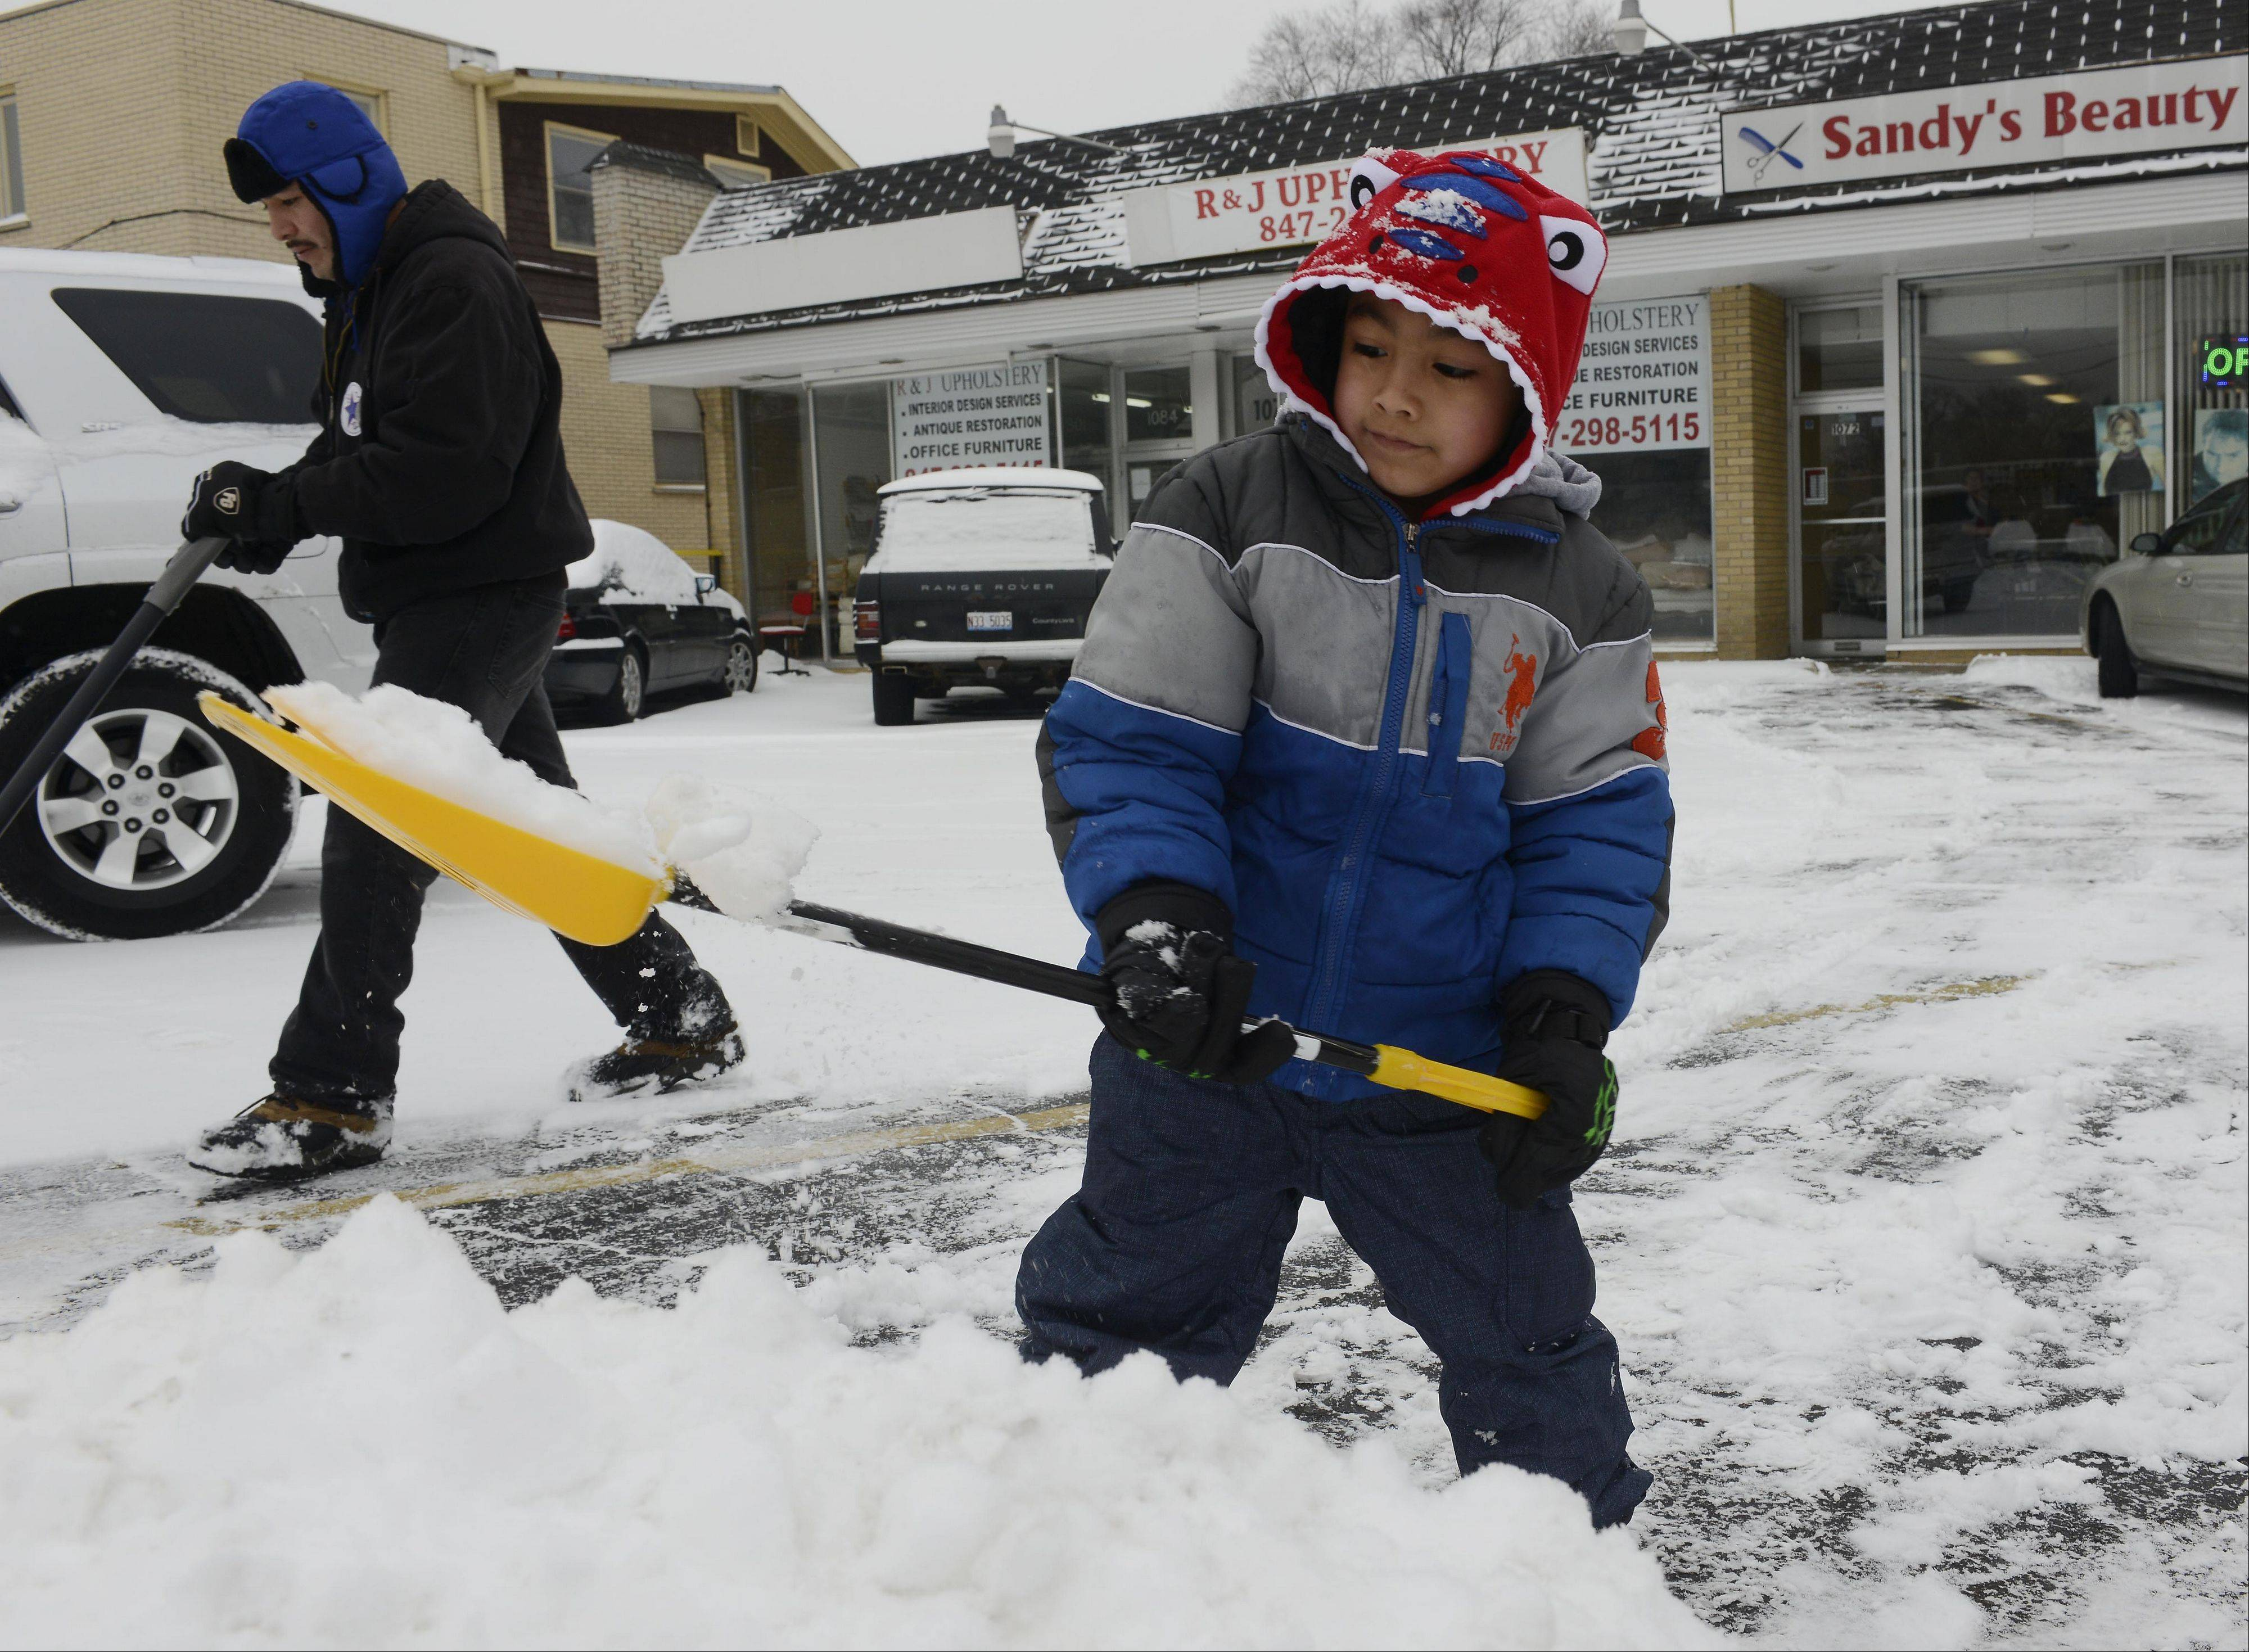 Fernando Velazquez, 5, of Des Plaines helps his dad, Beto, dig out the parking lot of an acquaintance's retail strip along Lee Street in Des Plaines Friday.